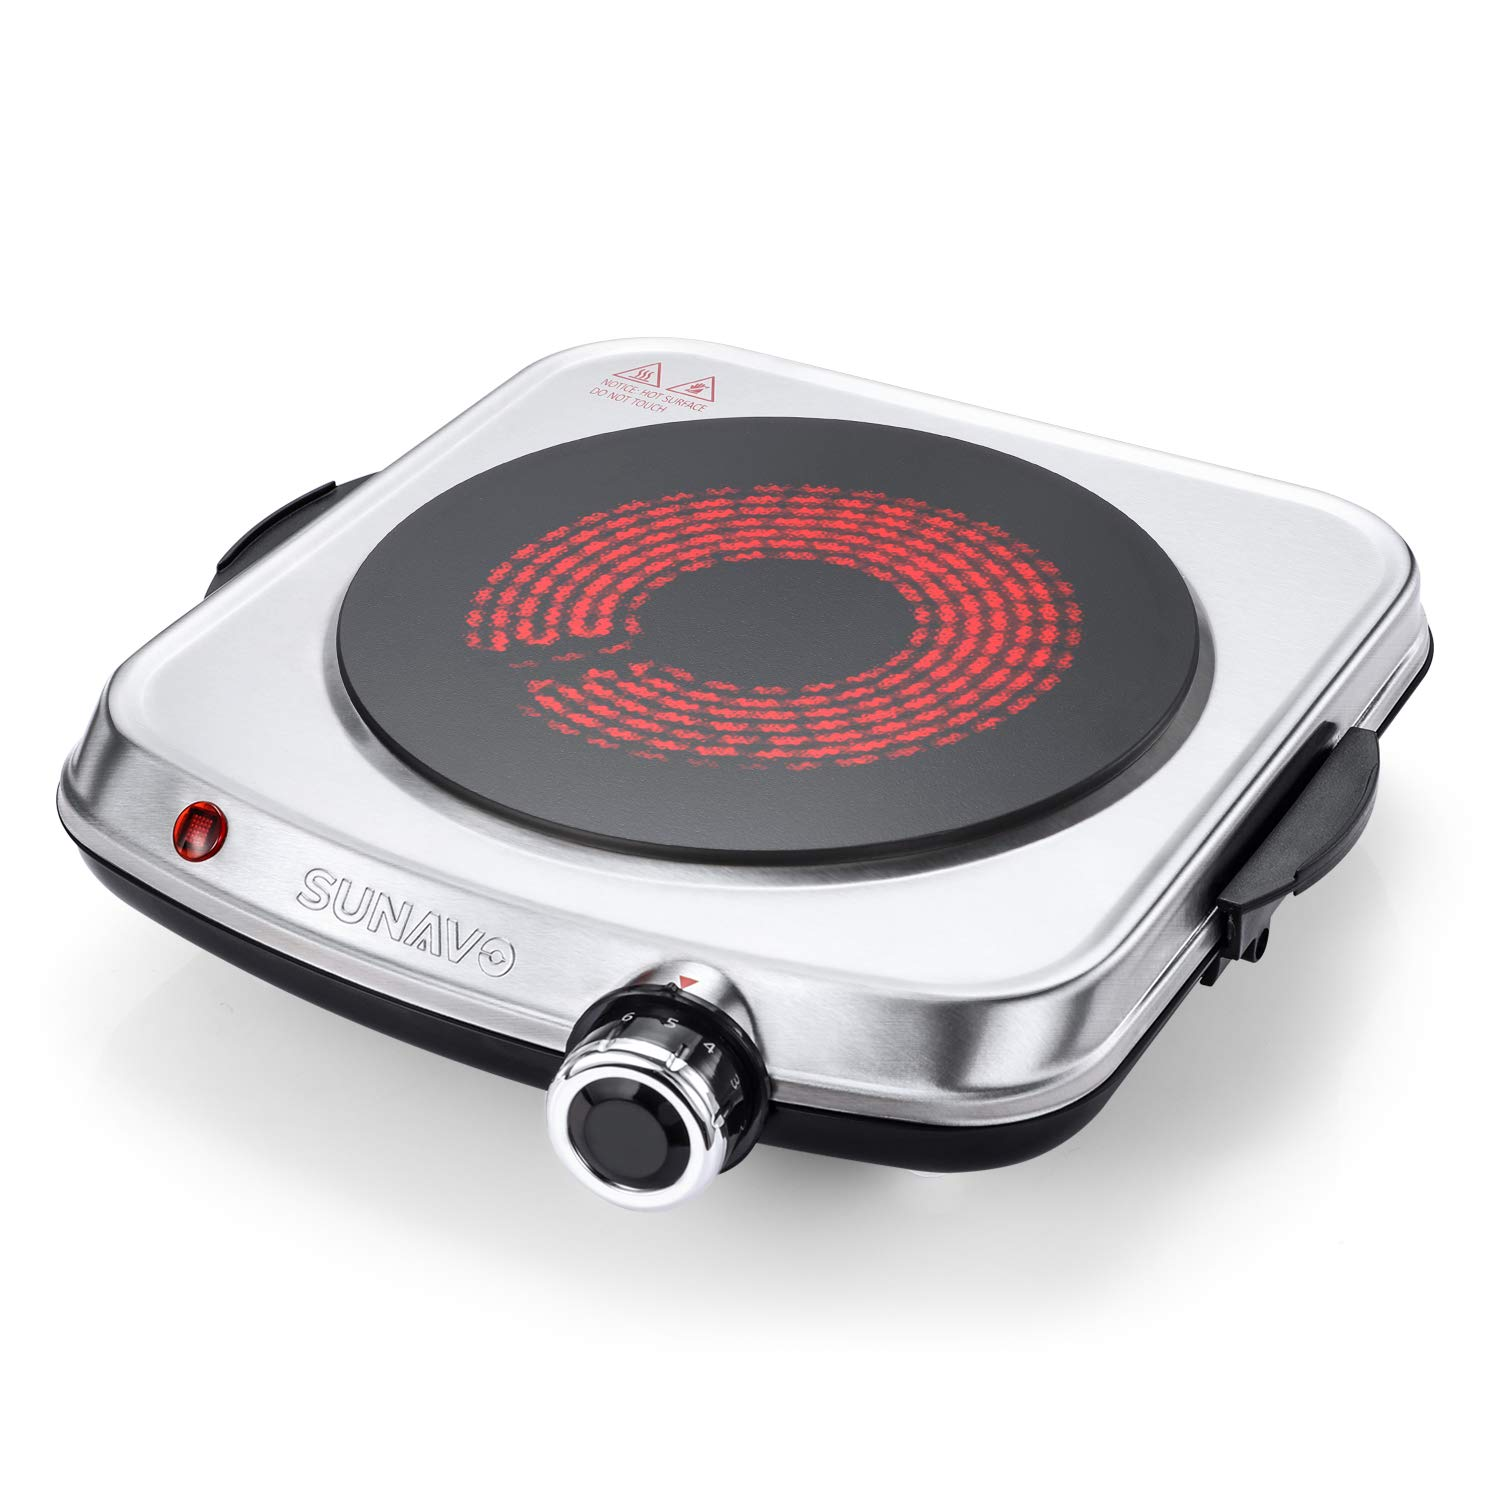 SUNAVO Infrared Burner Electric Single Ceramic Hot Plate 1200W Portable Cooktop Adjustable Temperature Control by sunavo